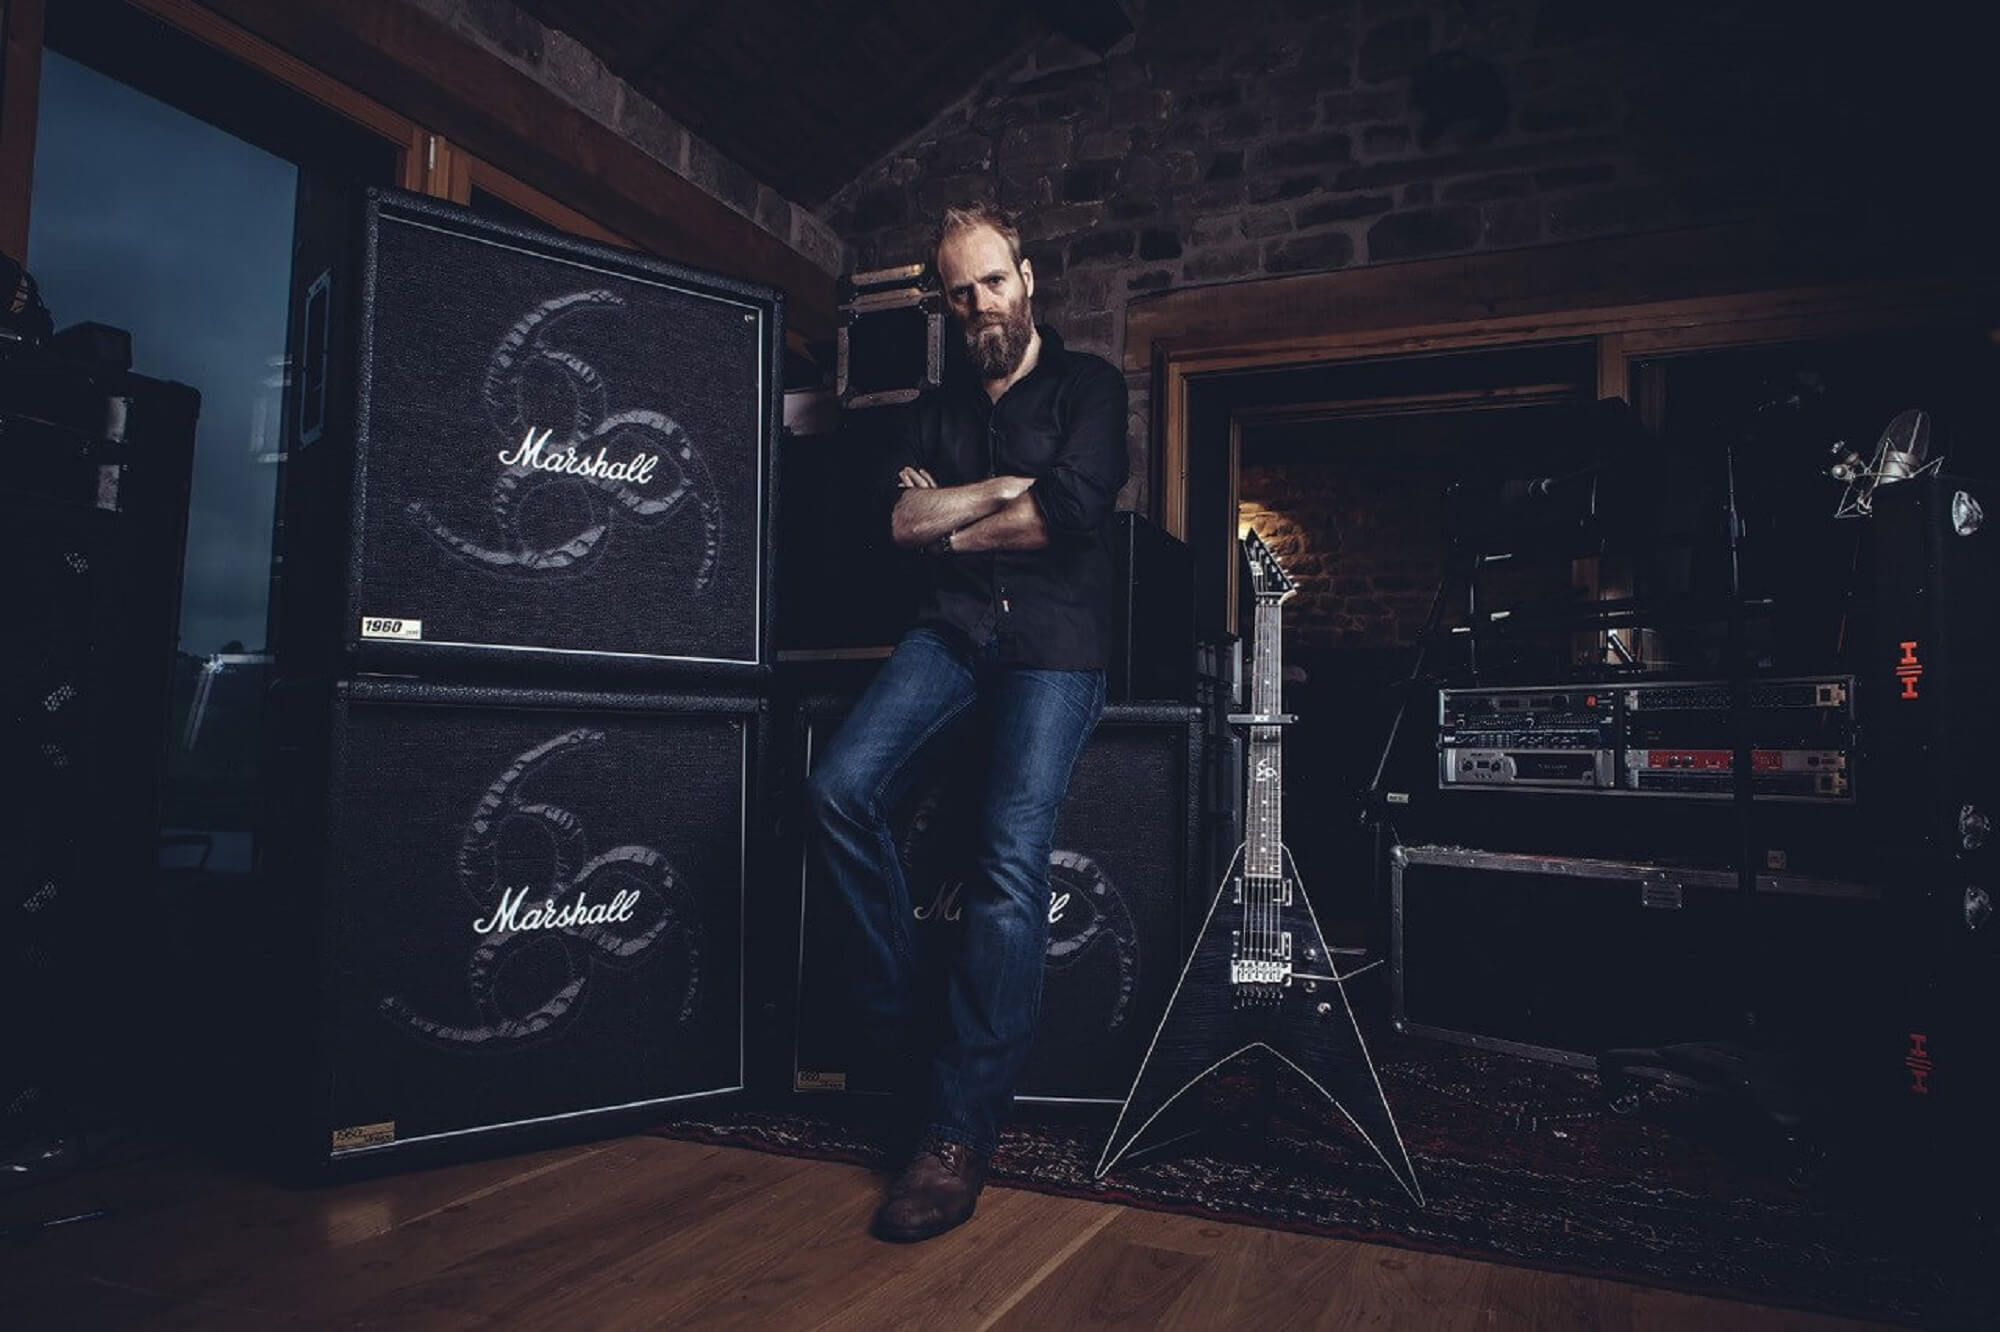 Rock producer Andy Sneap pictured in a recording studio with guitars and amplifiers